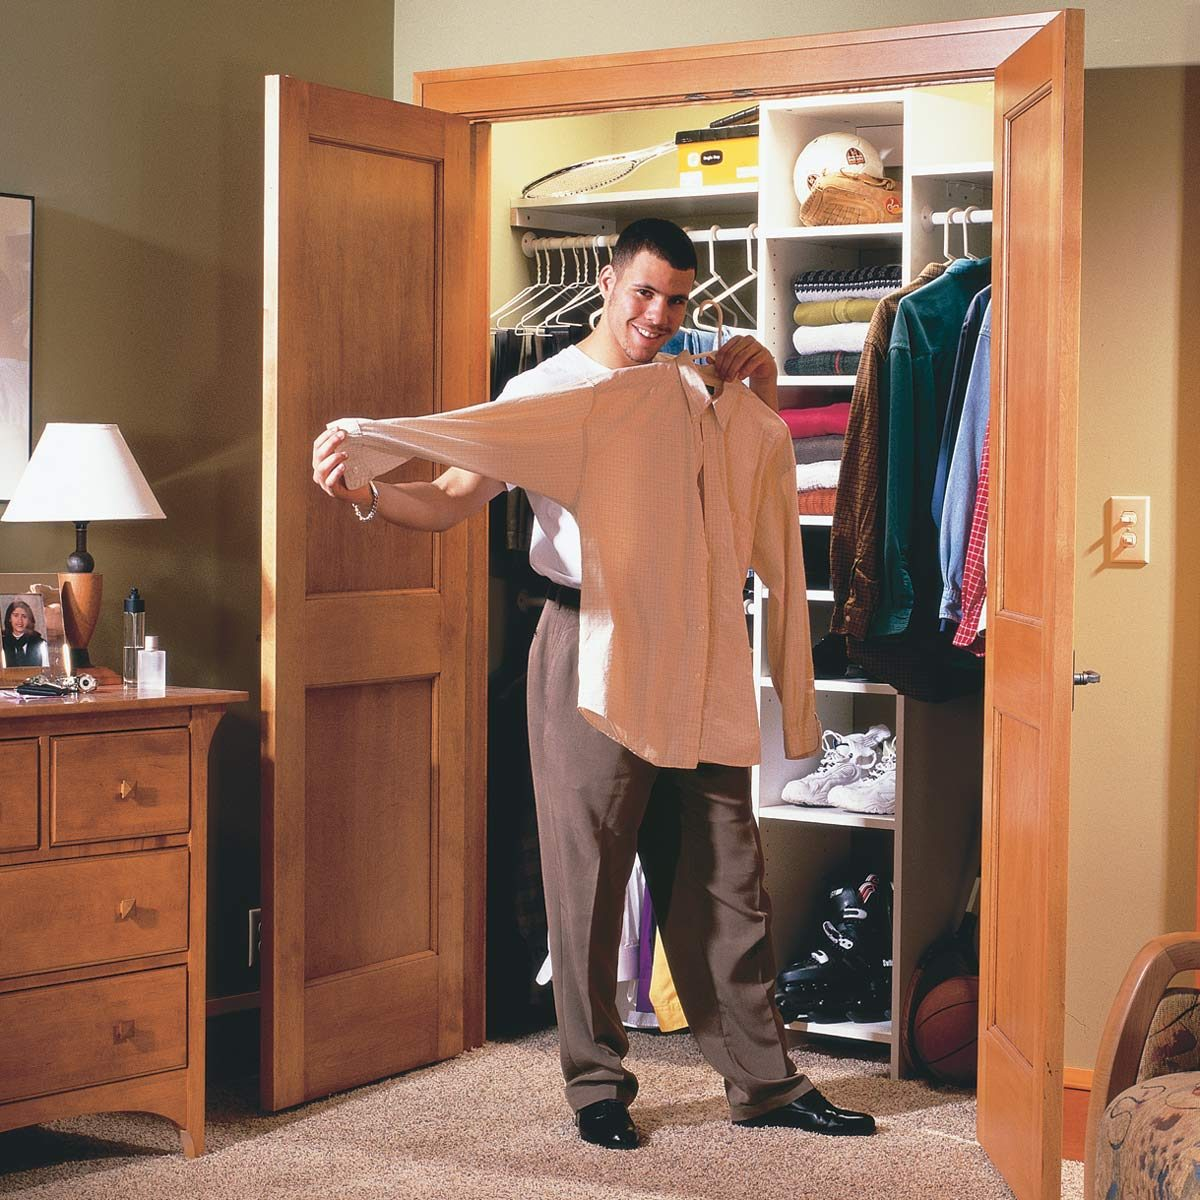 How To Build A Wall To Wall Closet Store More Stuff In A Closet With Doors Diy